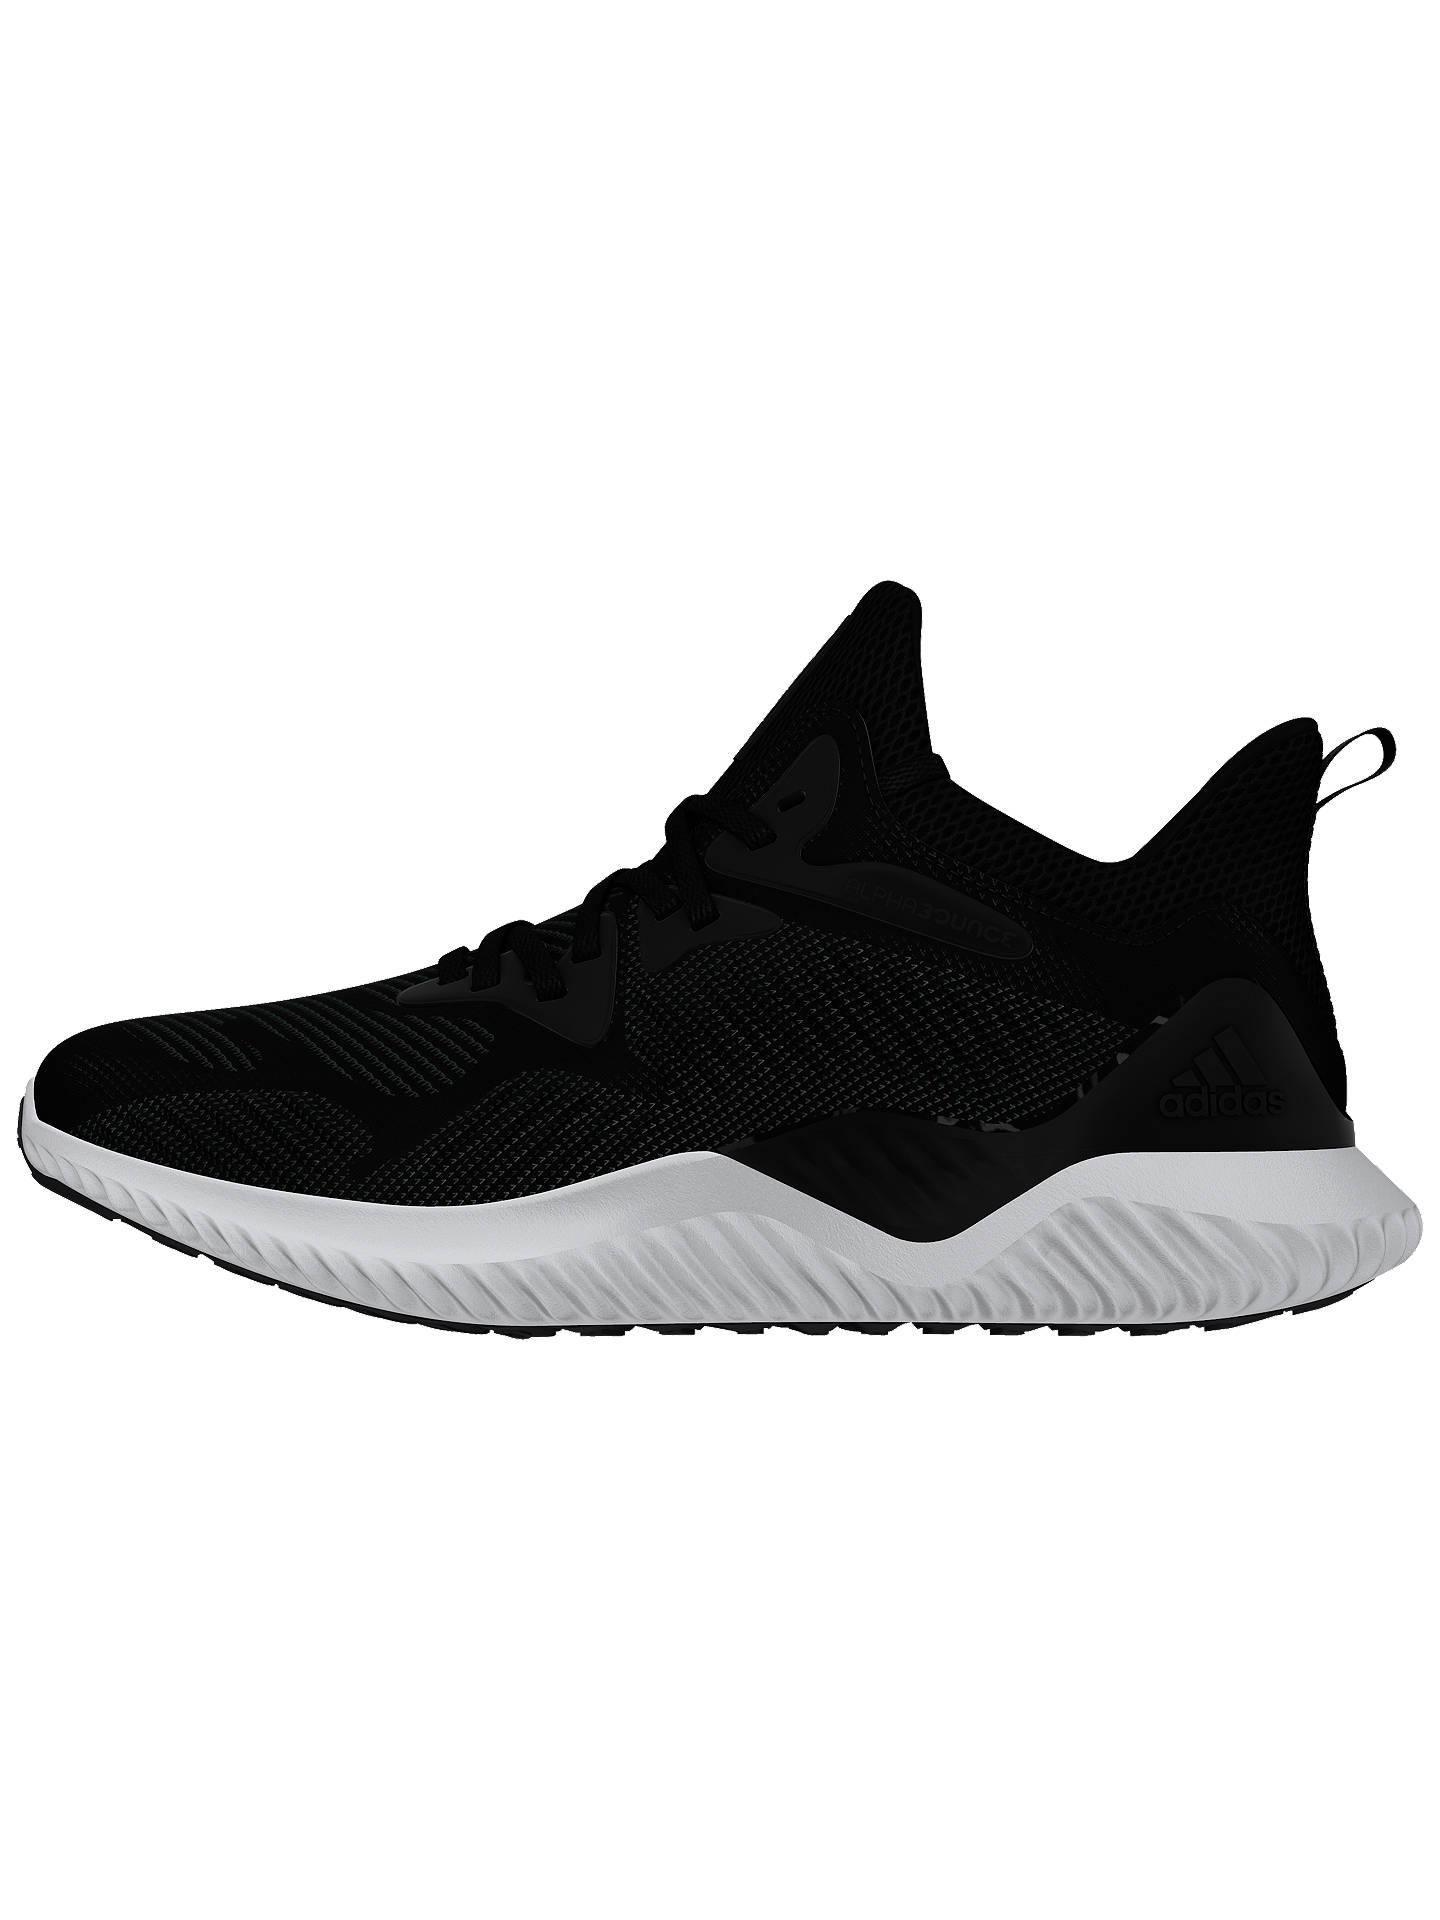 e1232d33b adidas Alphabounce Beyond Women s Running Shoes at John Lewis   Partners